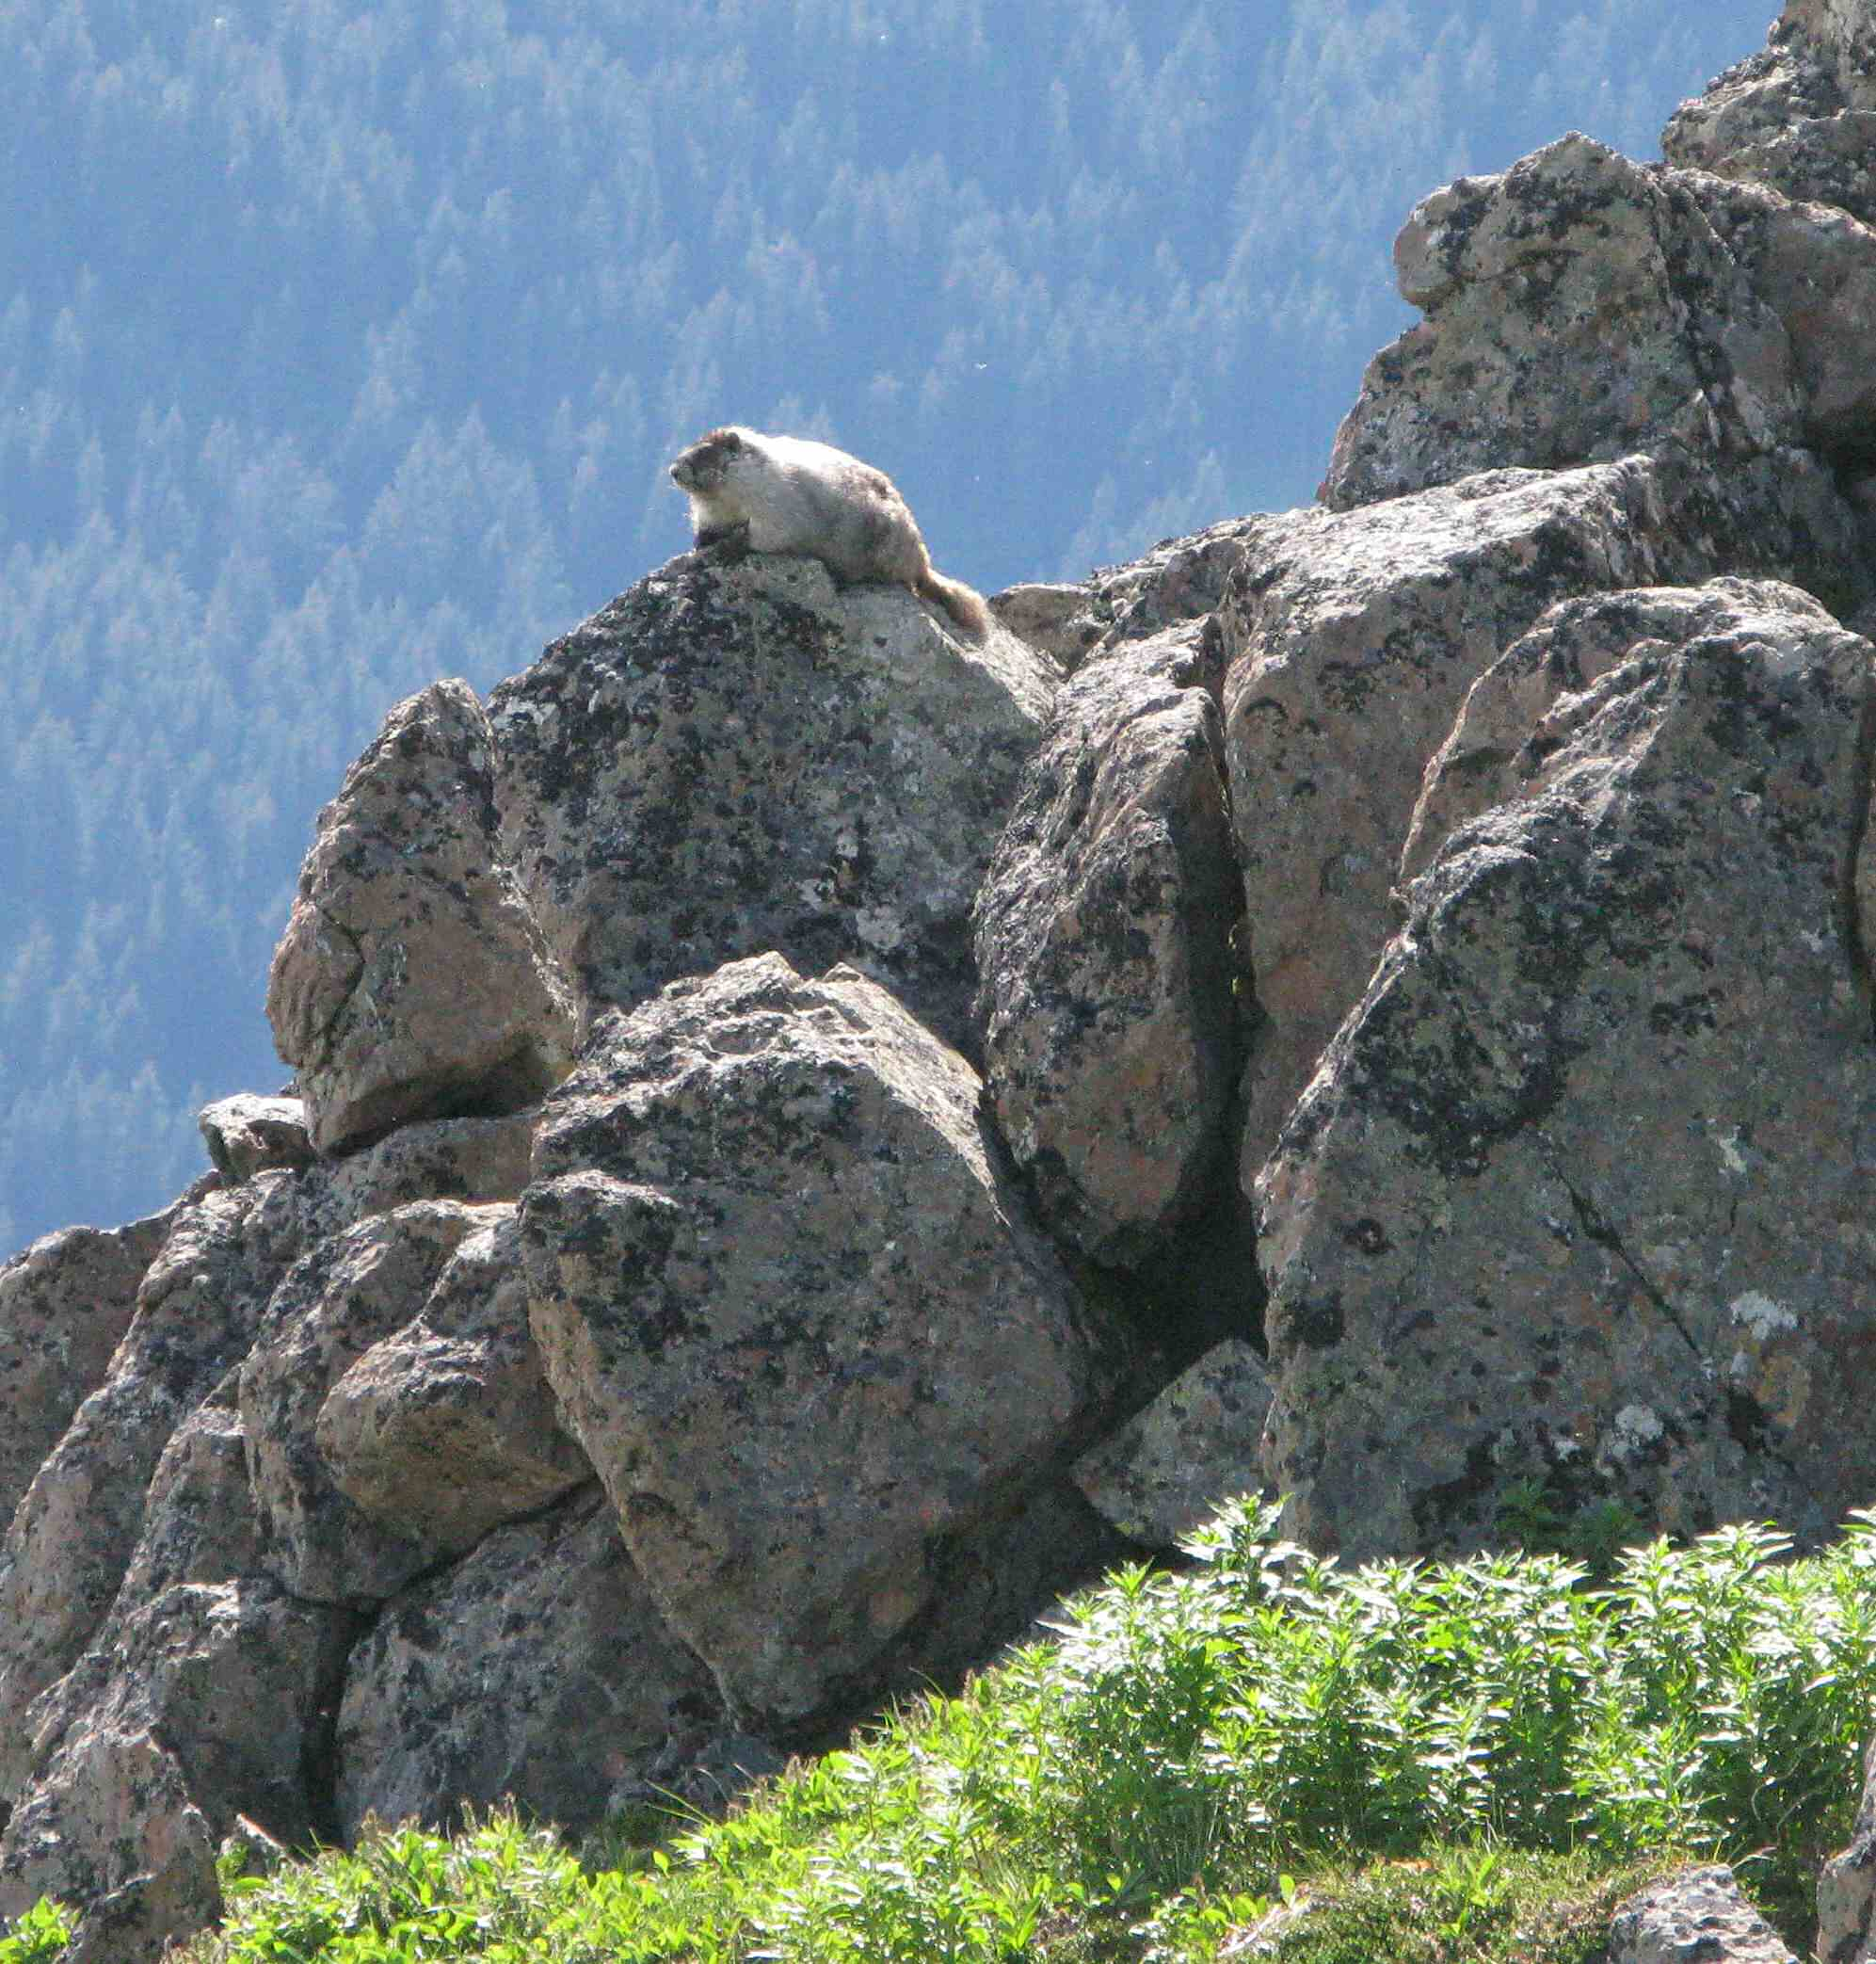 View and photograph wildlife -- a hoary marmot -- in their natural habitat.